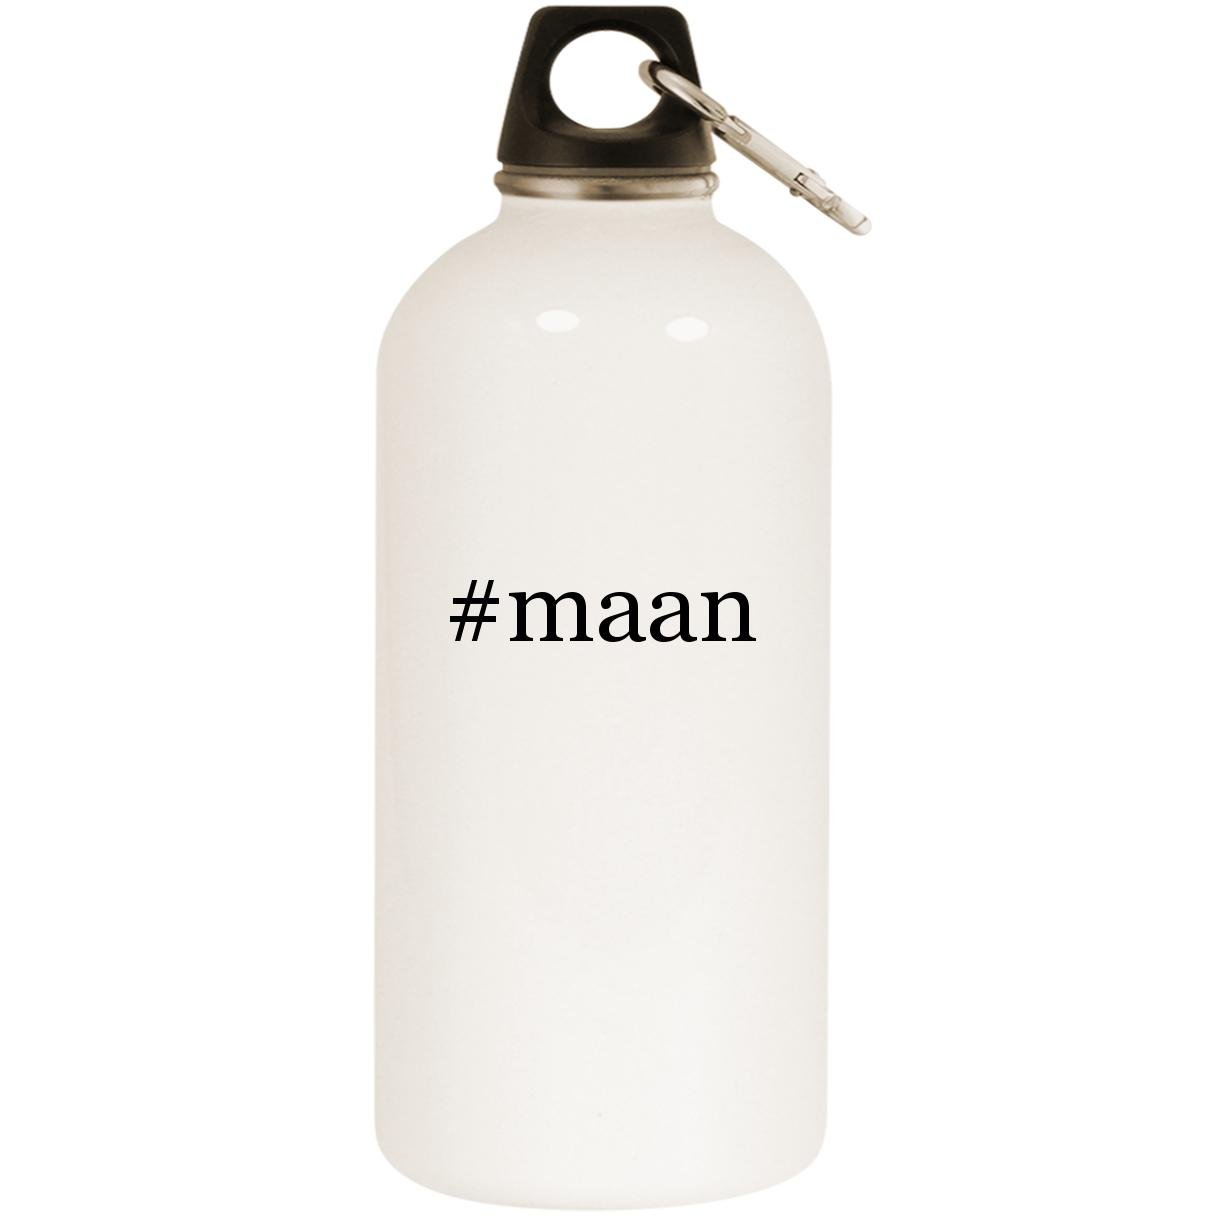 Molandra Products #maan - White Hashtag 20oz Stainless Steel Water Bottle with Carabiner by Molandra Products